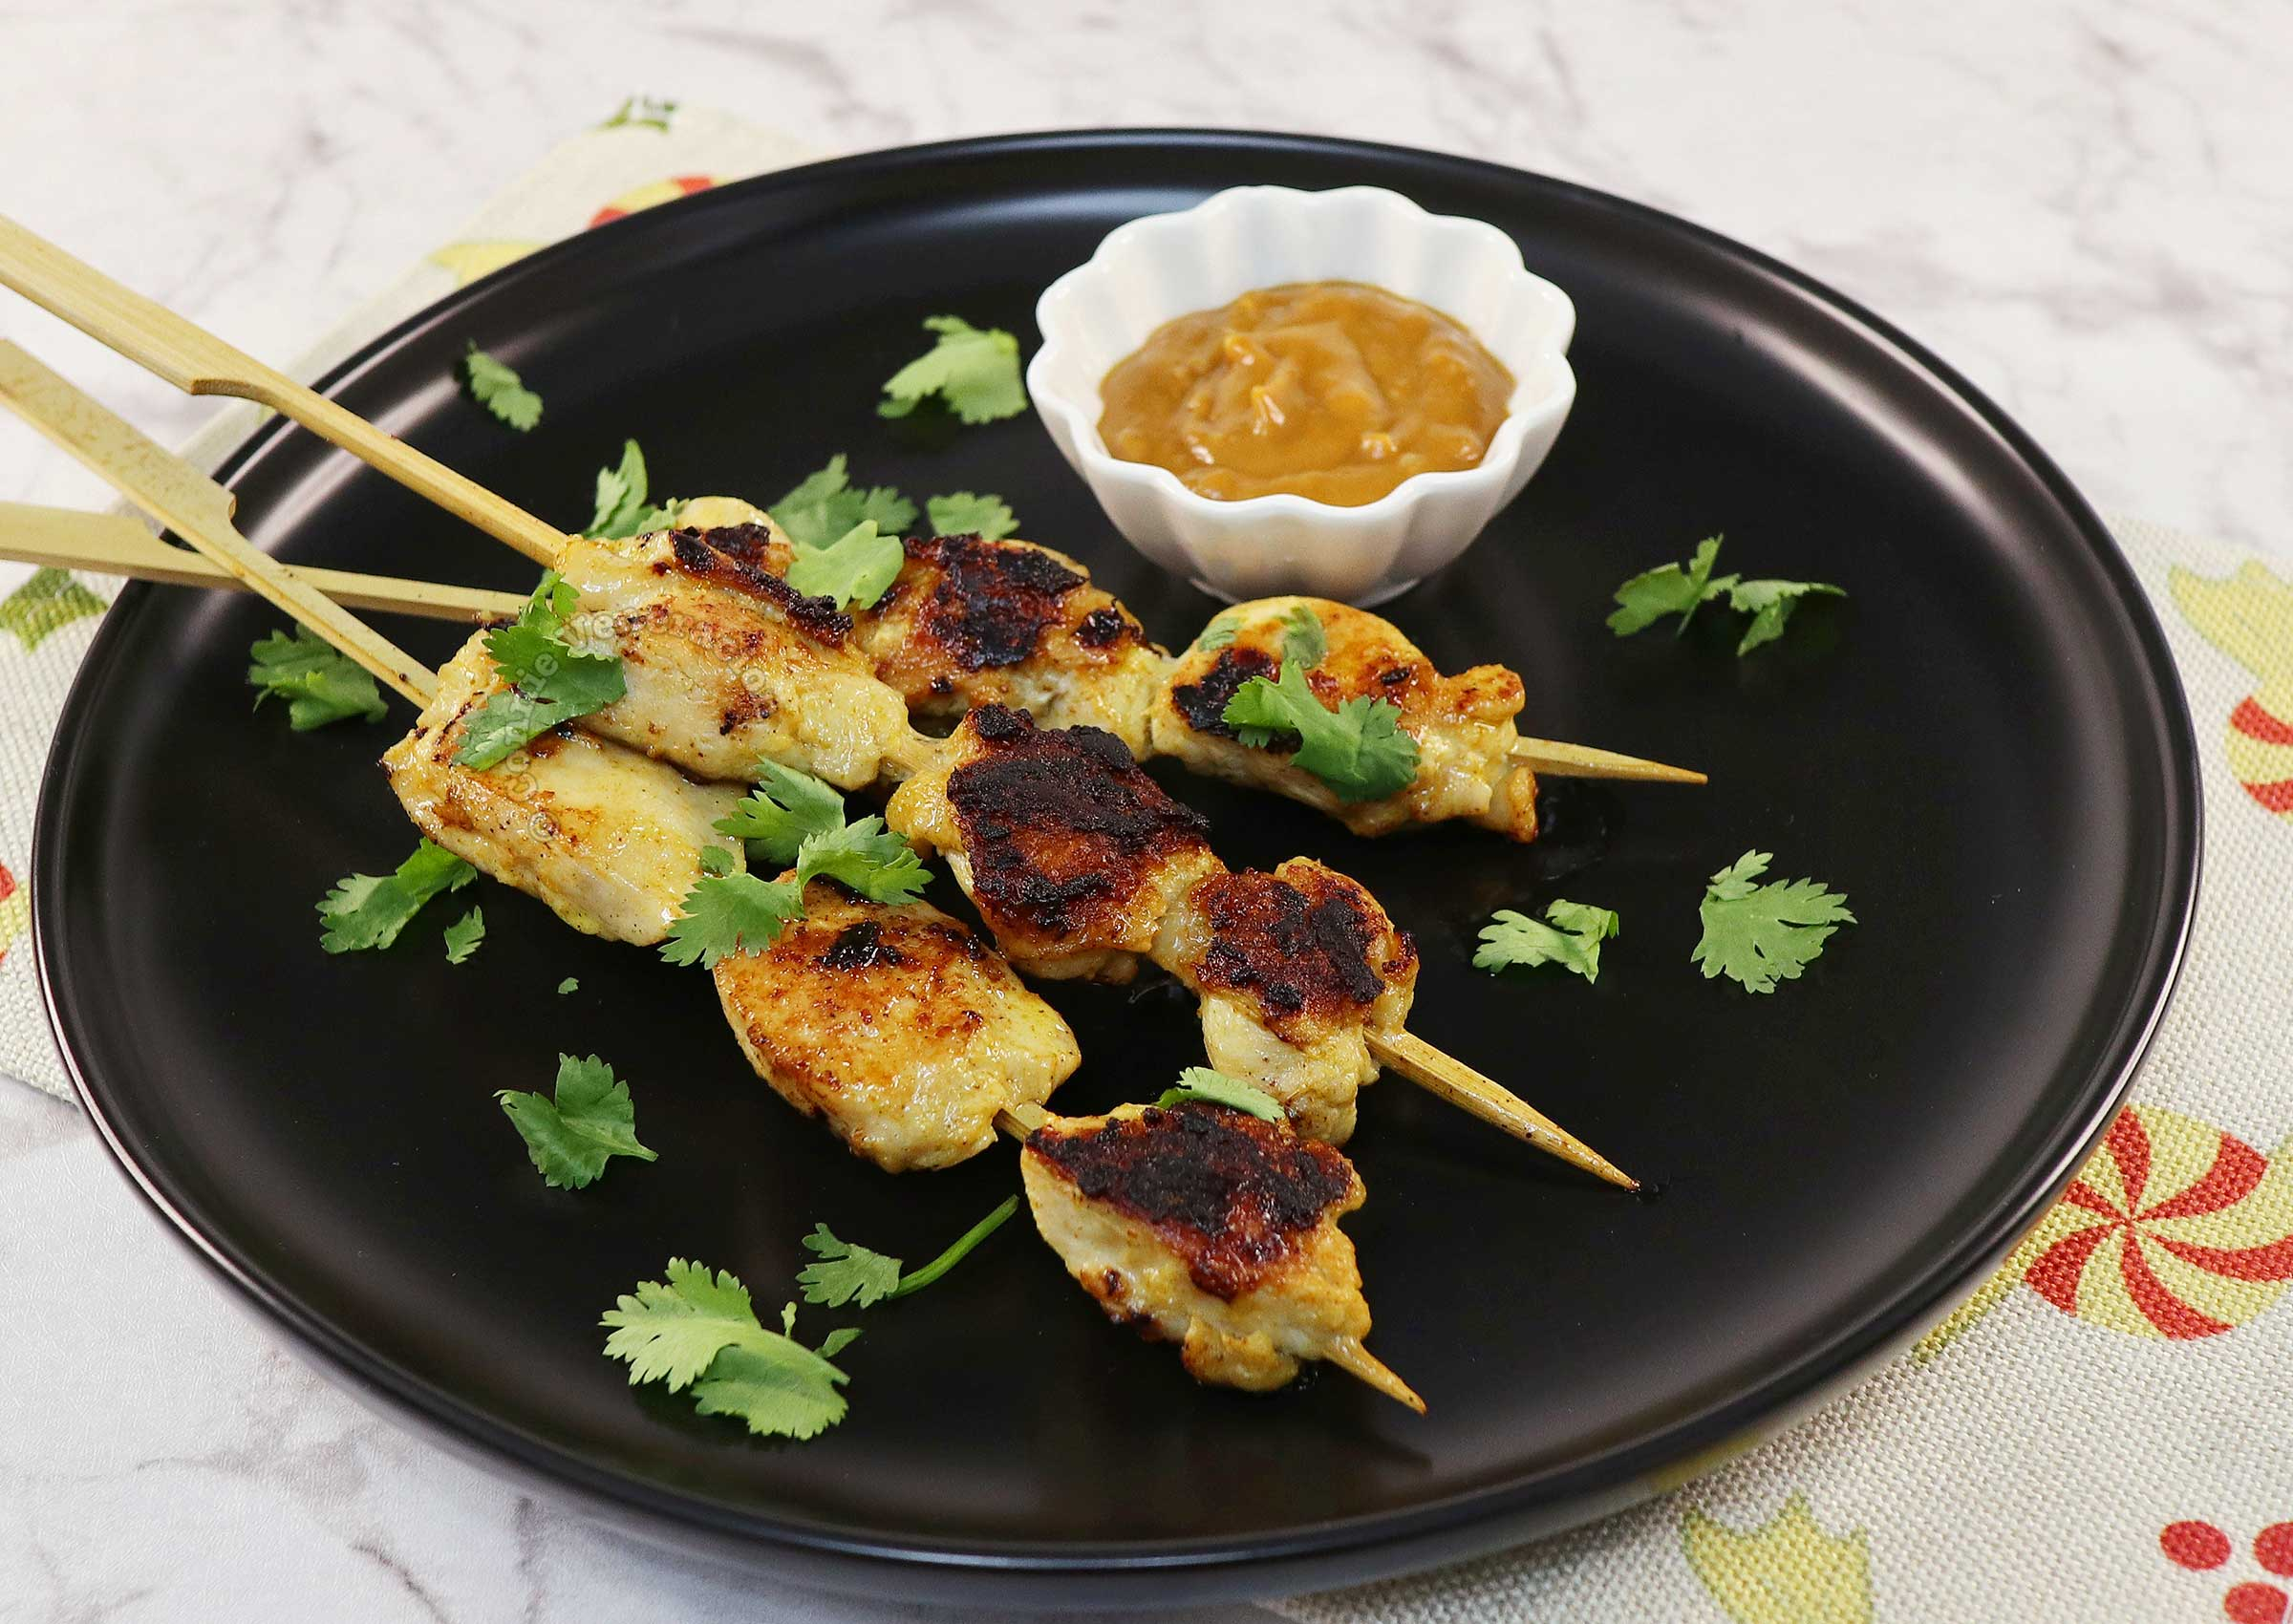 How to Cook Chicken (Sate / Satay) with Peanut Dipping Sauce